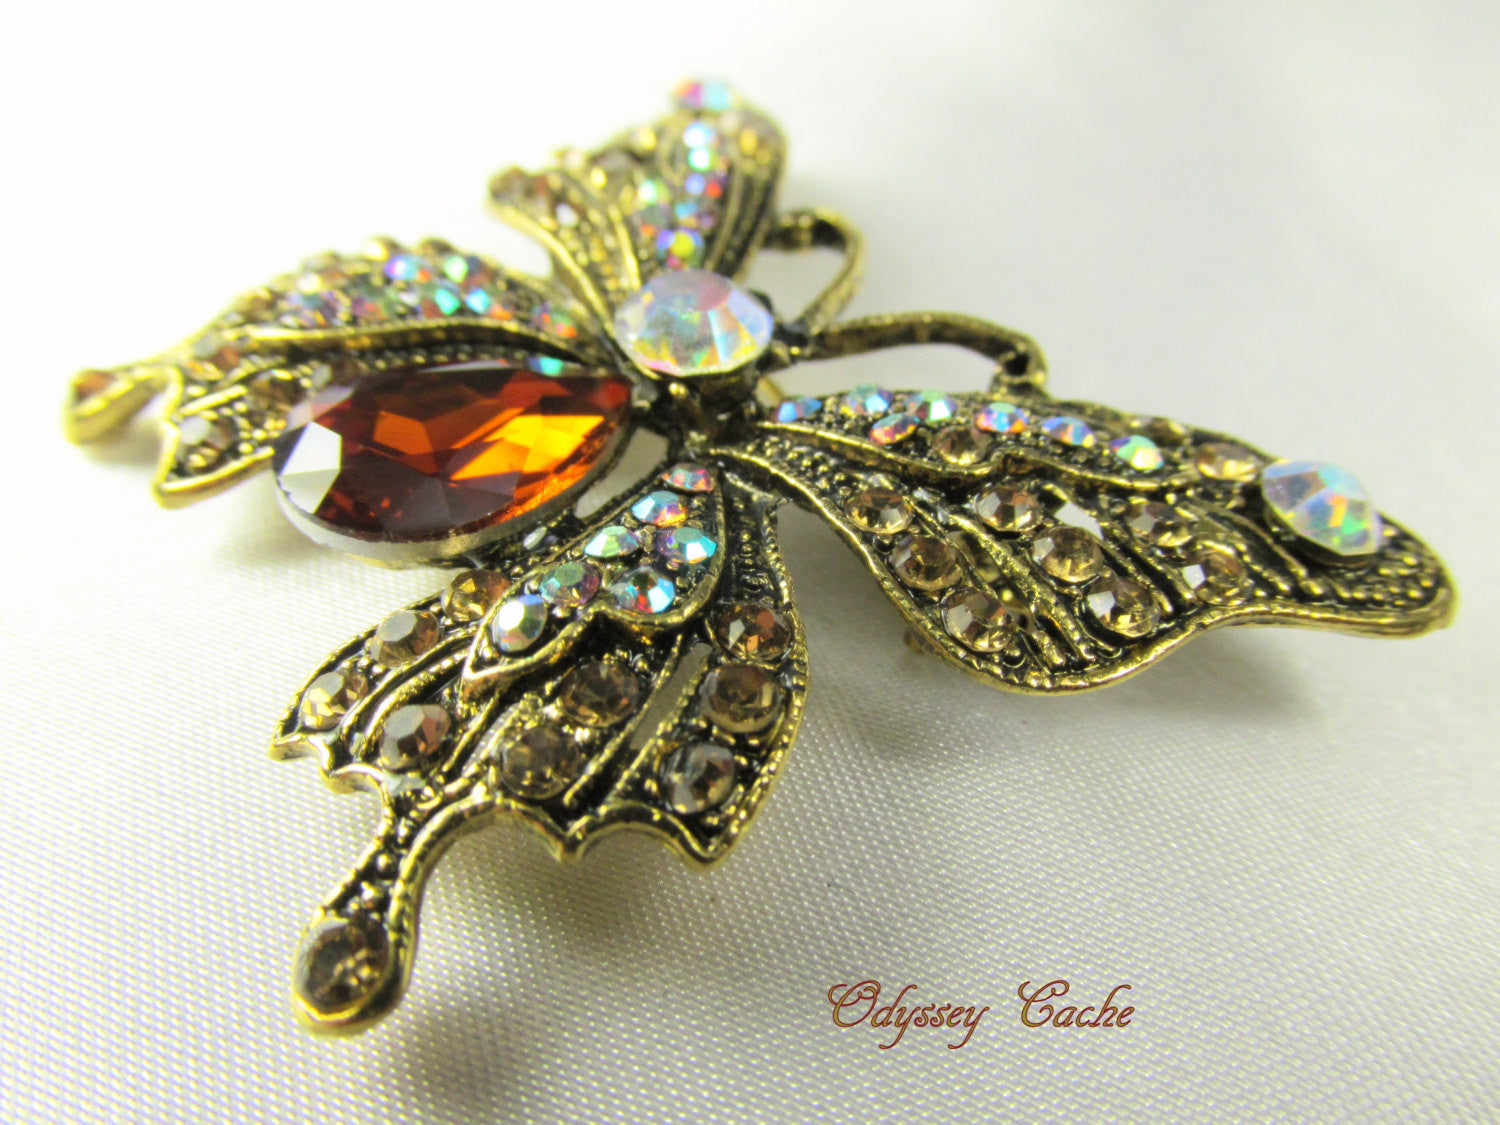 Butterfly Brooch in Topaz, Crystal AB and Antique Gold - Odyssey Cache - 1